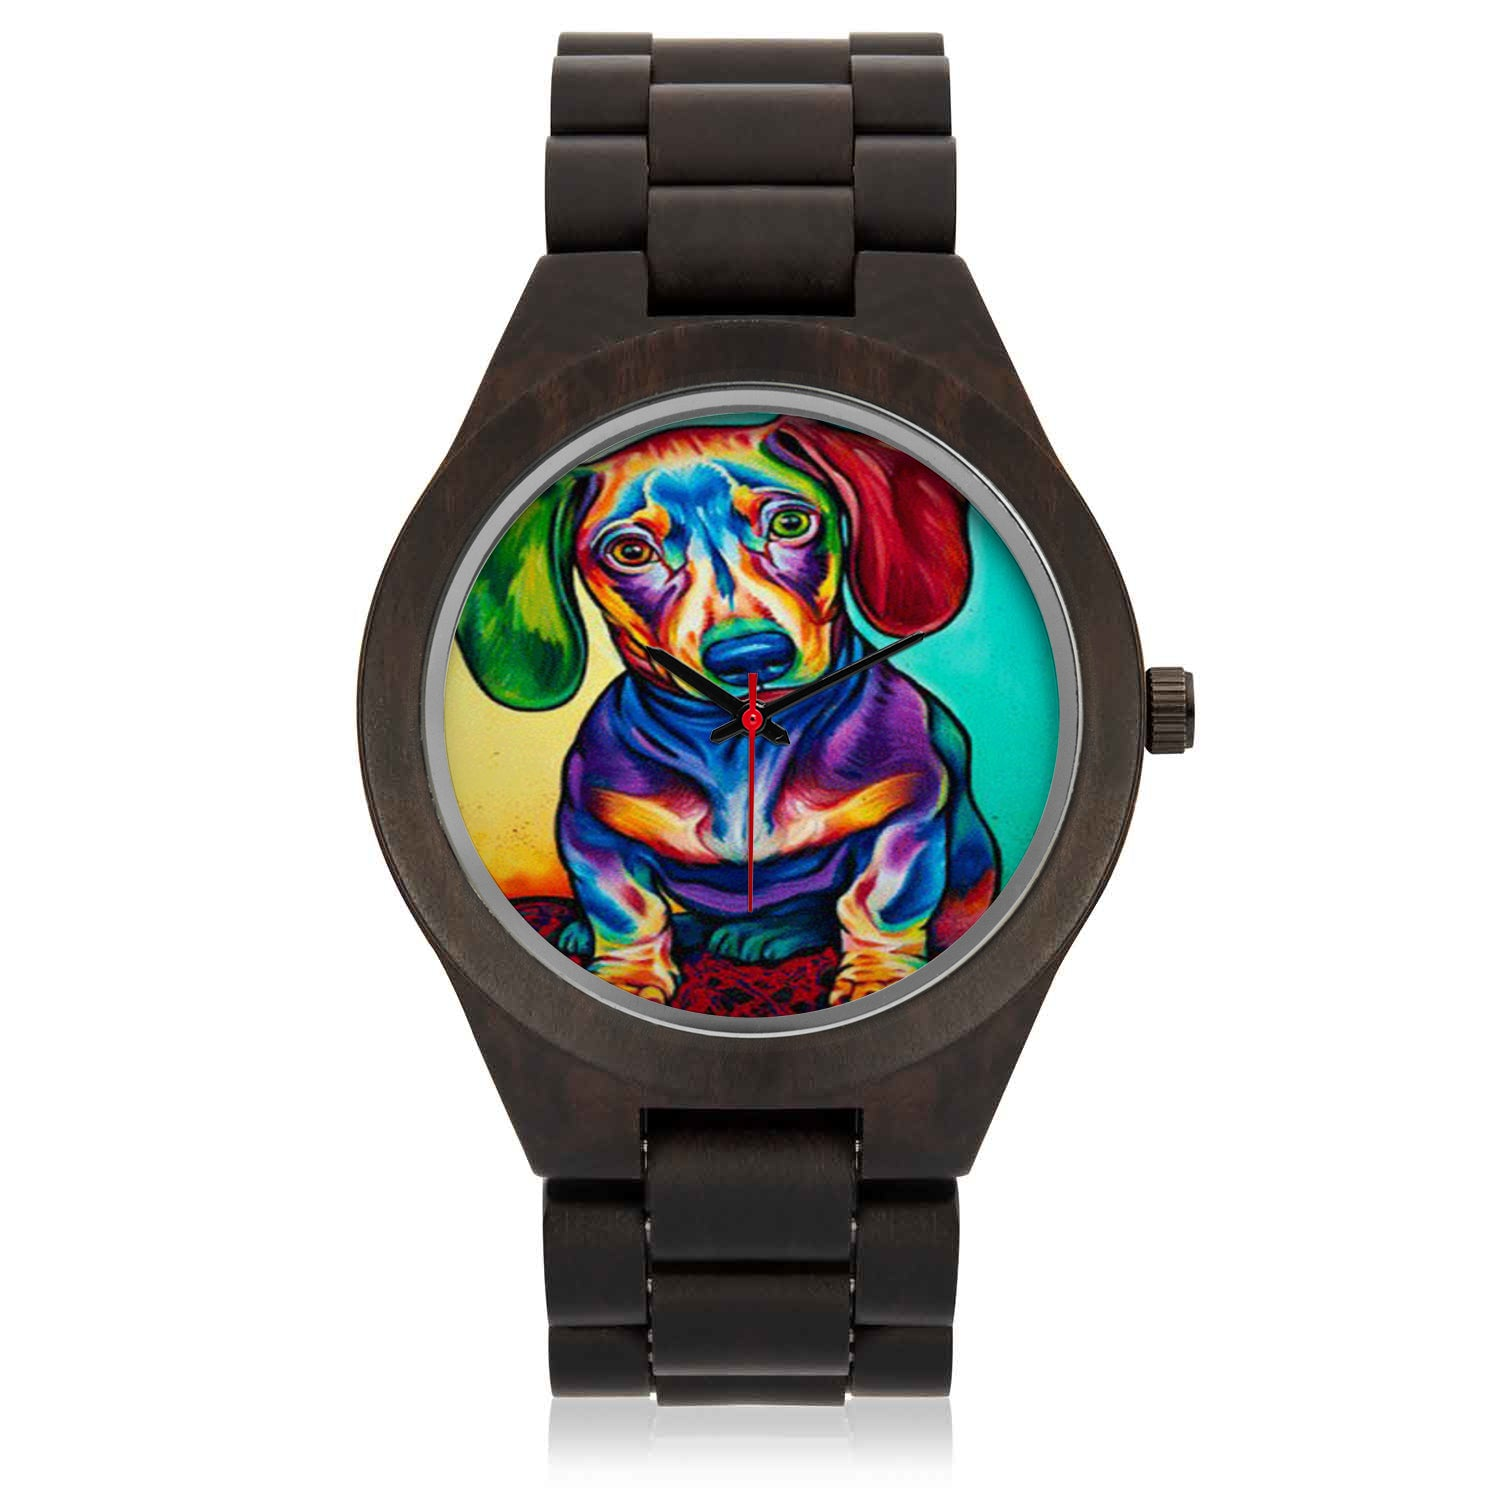 Persinalized Wood Watch